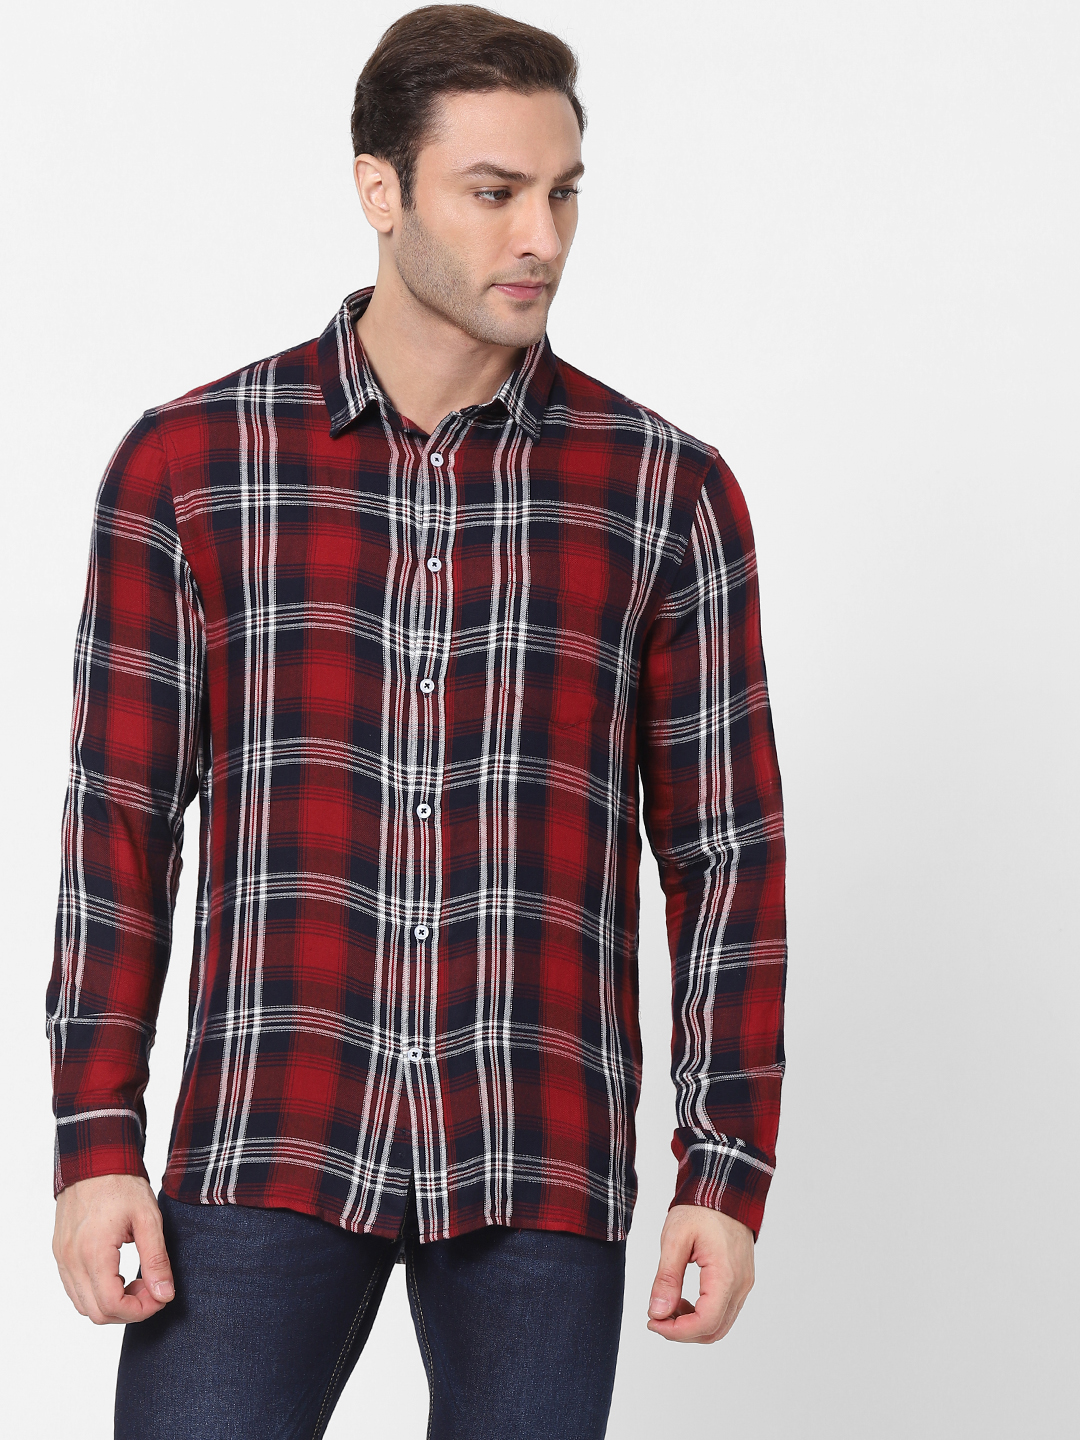 celio | Red Checked Shirt